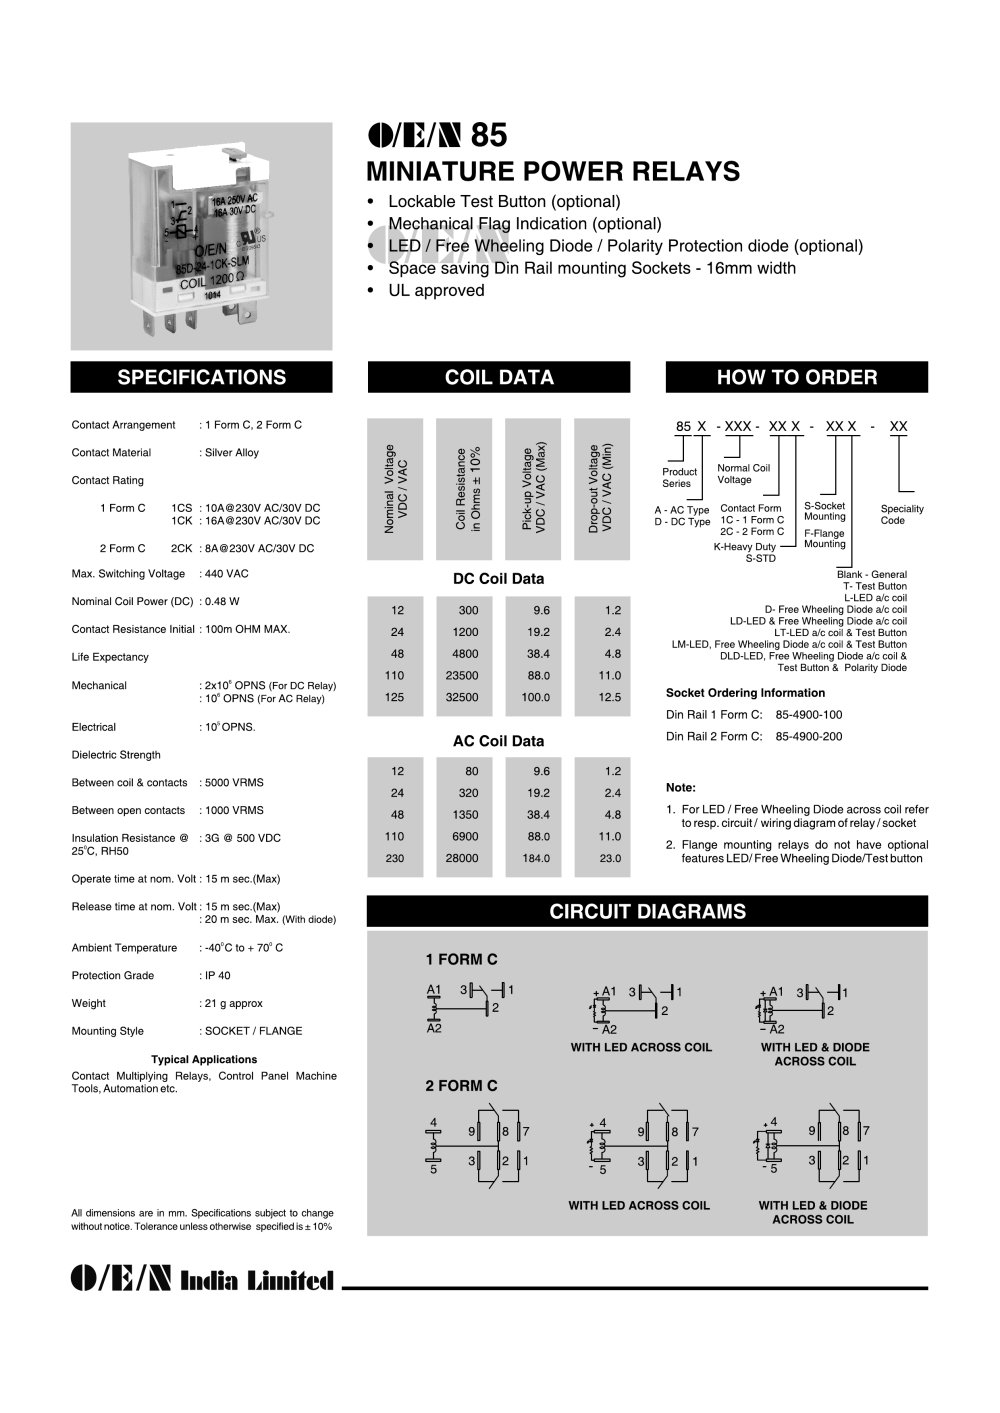 series 85 power relay 226393_1b series 85 power relay o e n india ltd pdf catalogue form c relay wiring diagram at mifinder.co